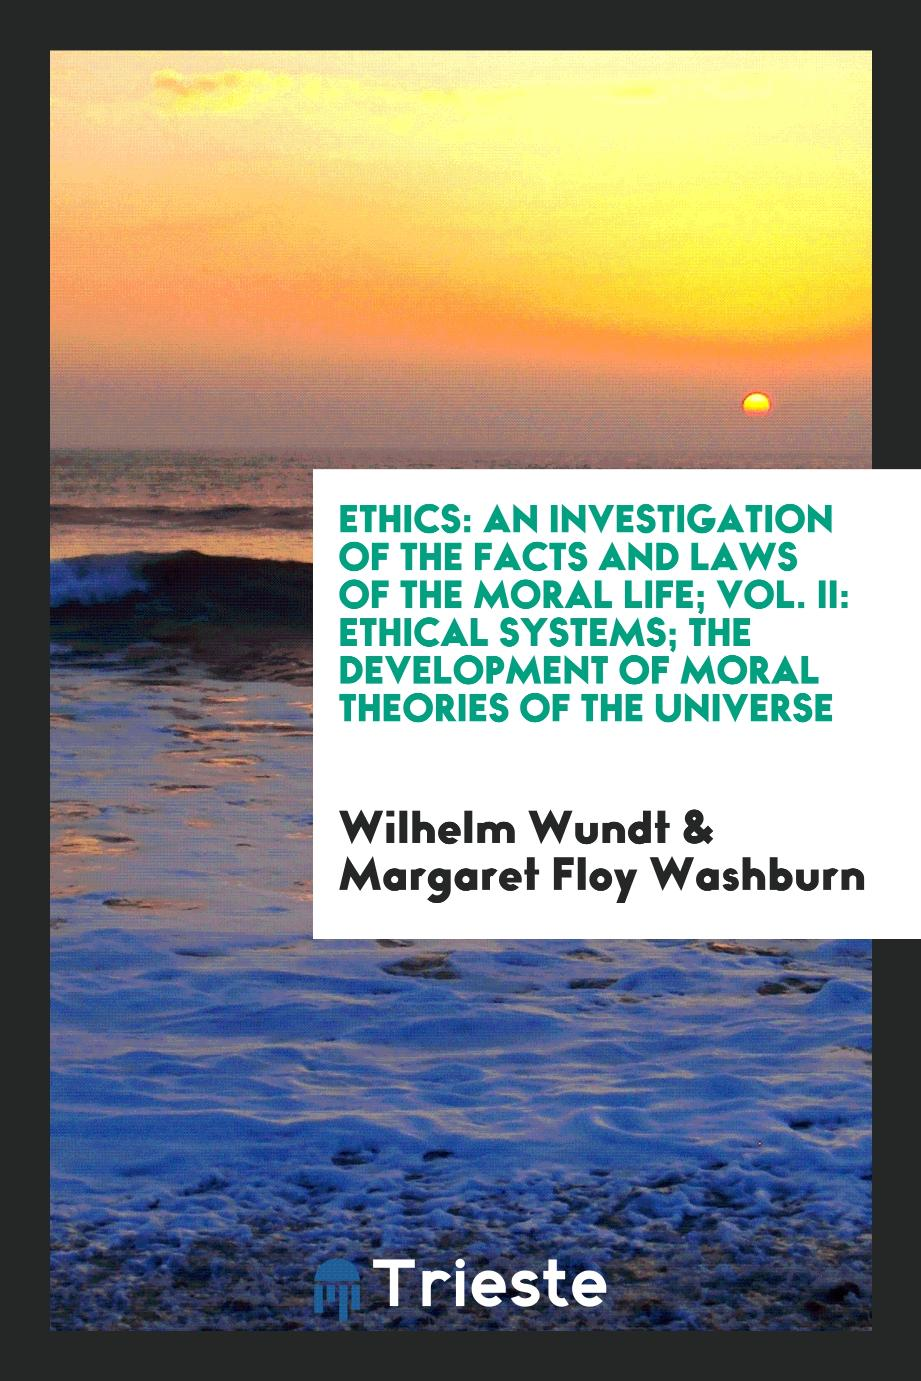 Ethics: An Investigation of the Facts and Laws of the Moral Life; Vol. II: Ethical Systems; The Development of Moral Theories of the Universe